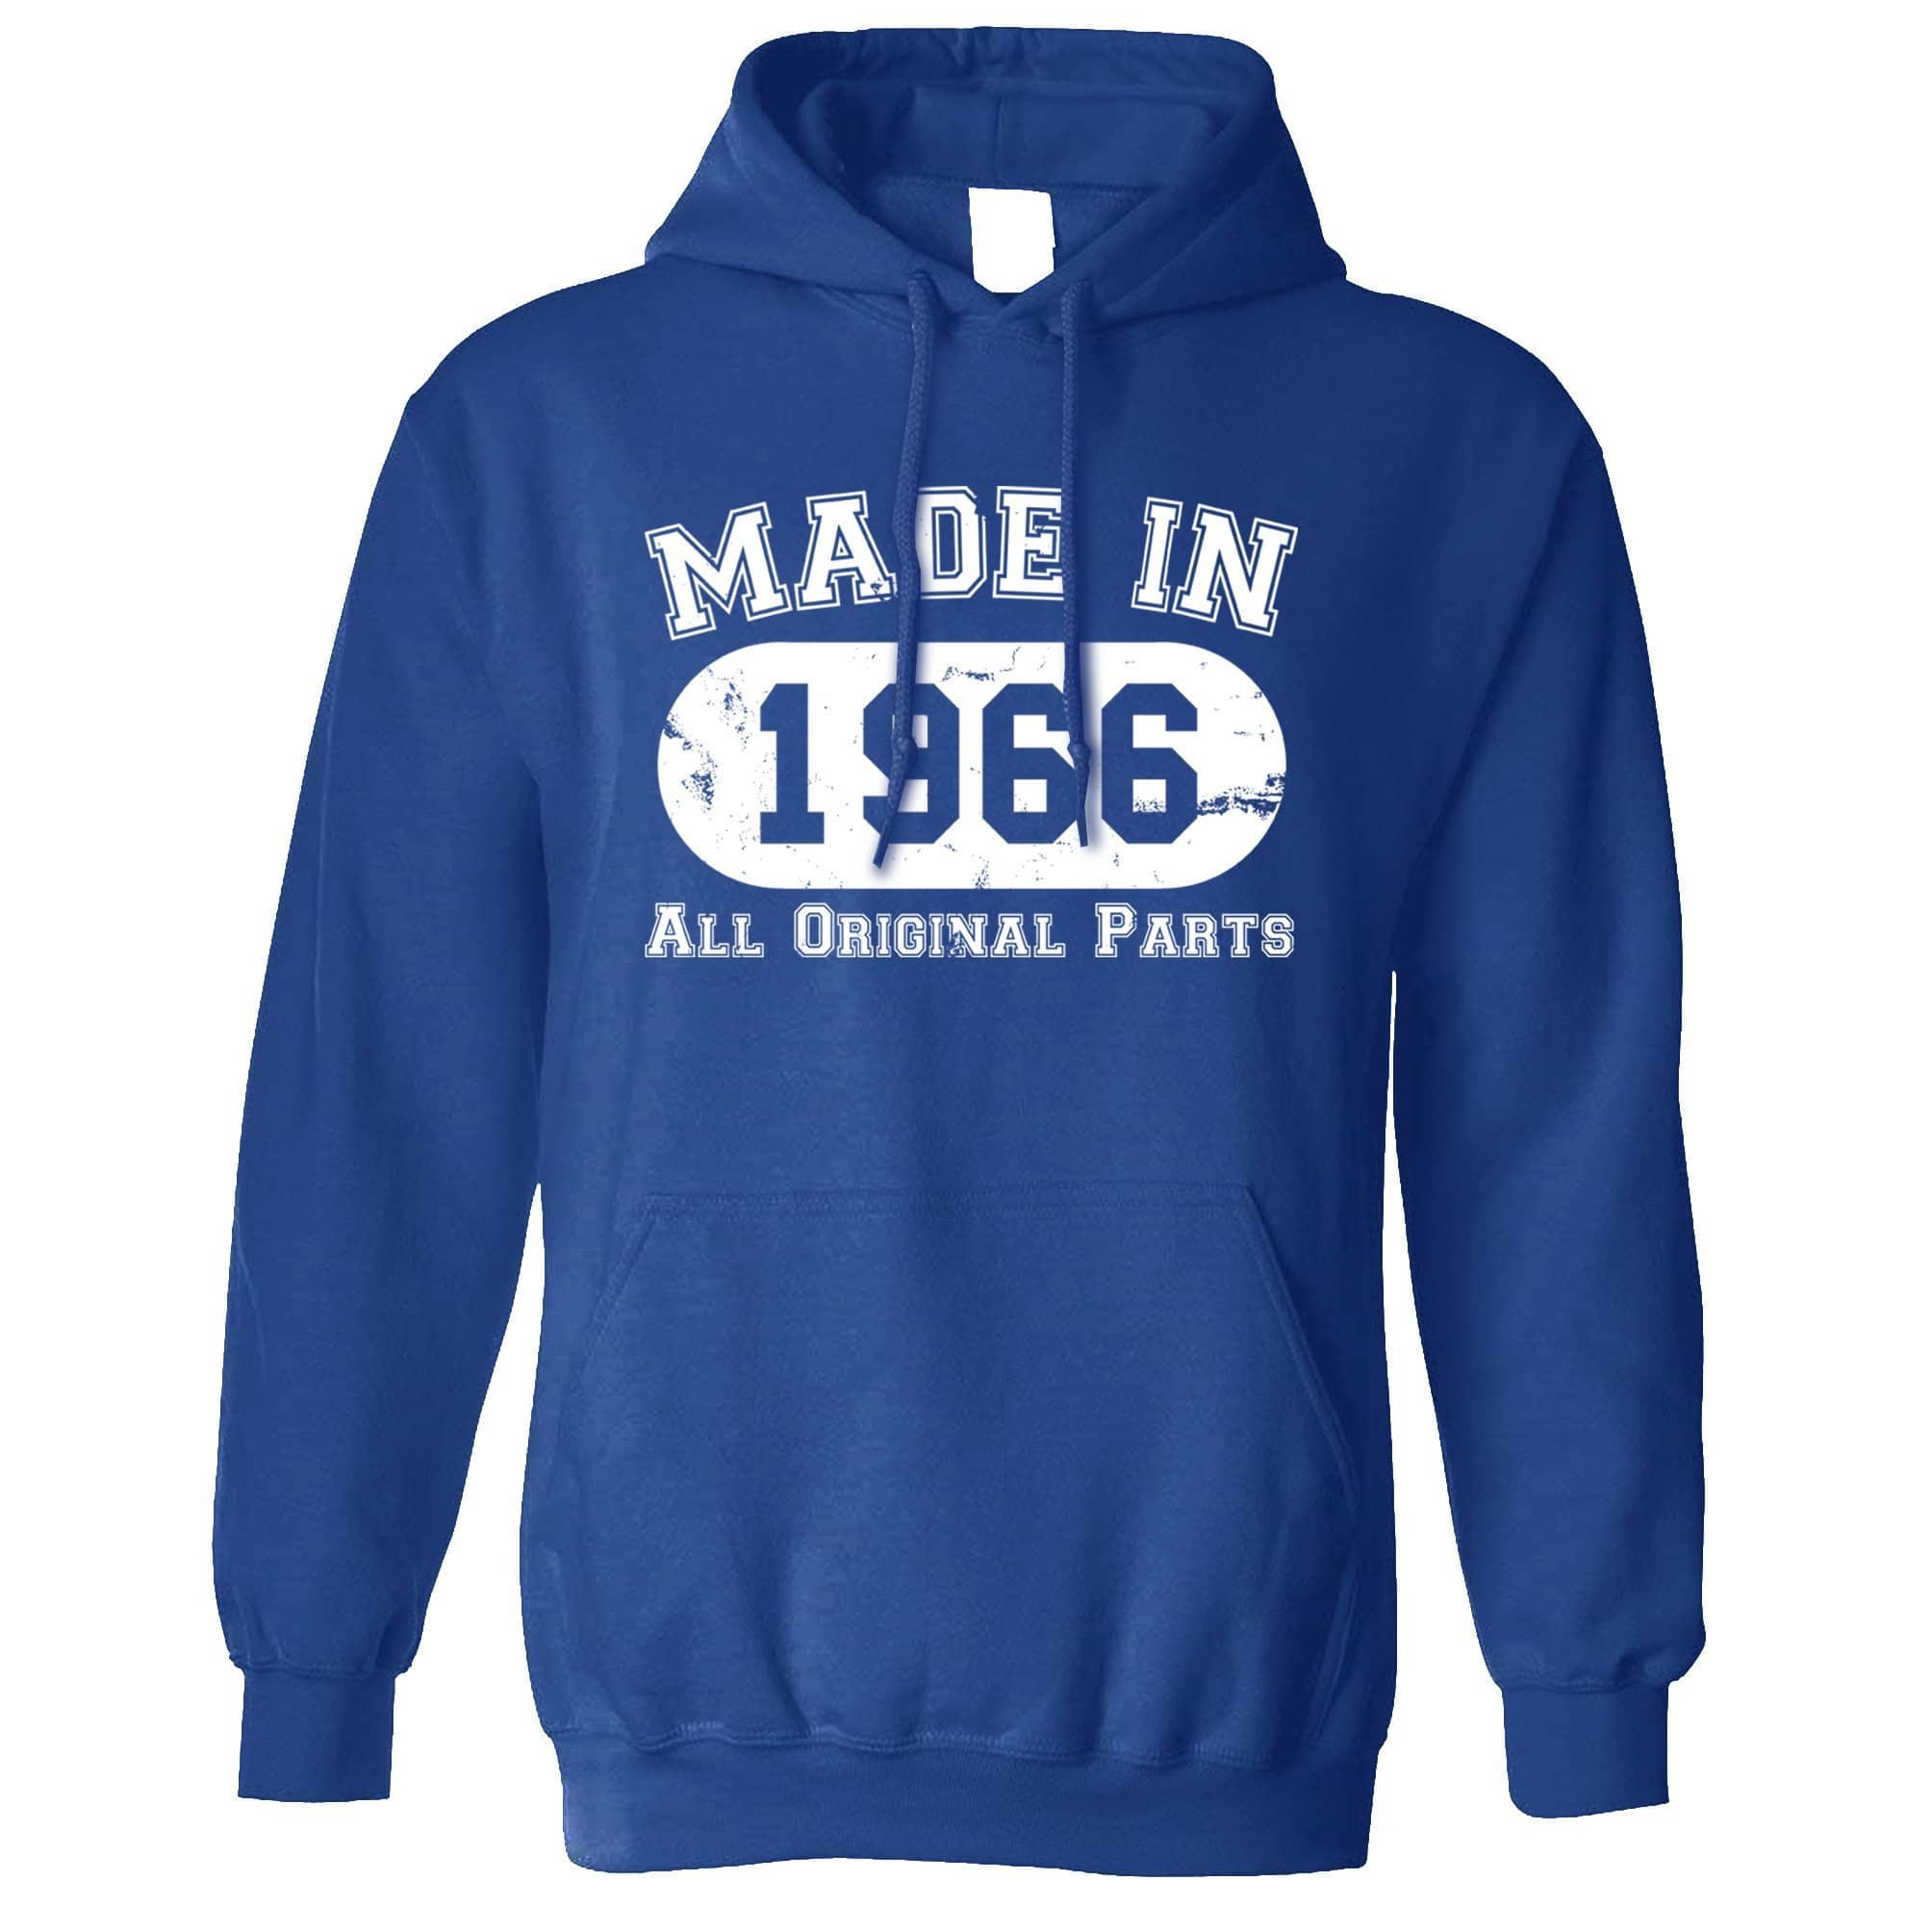 Made in 1966 All Original Parts Hoodie [Distressed]